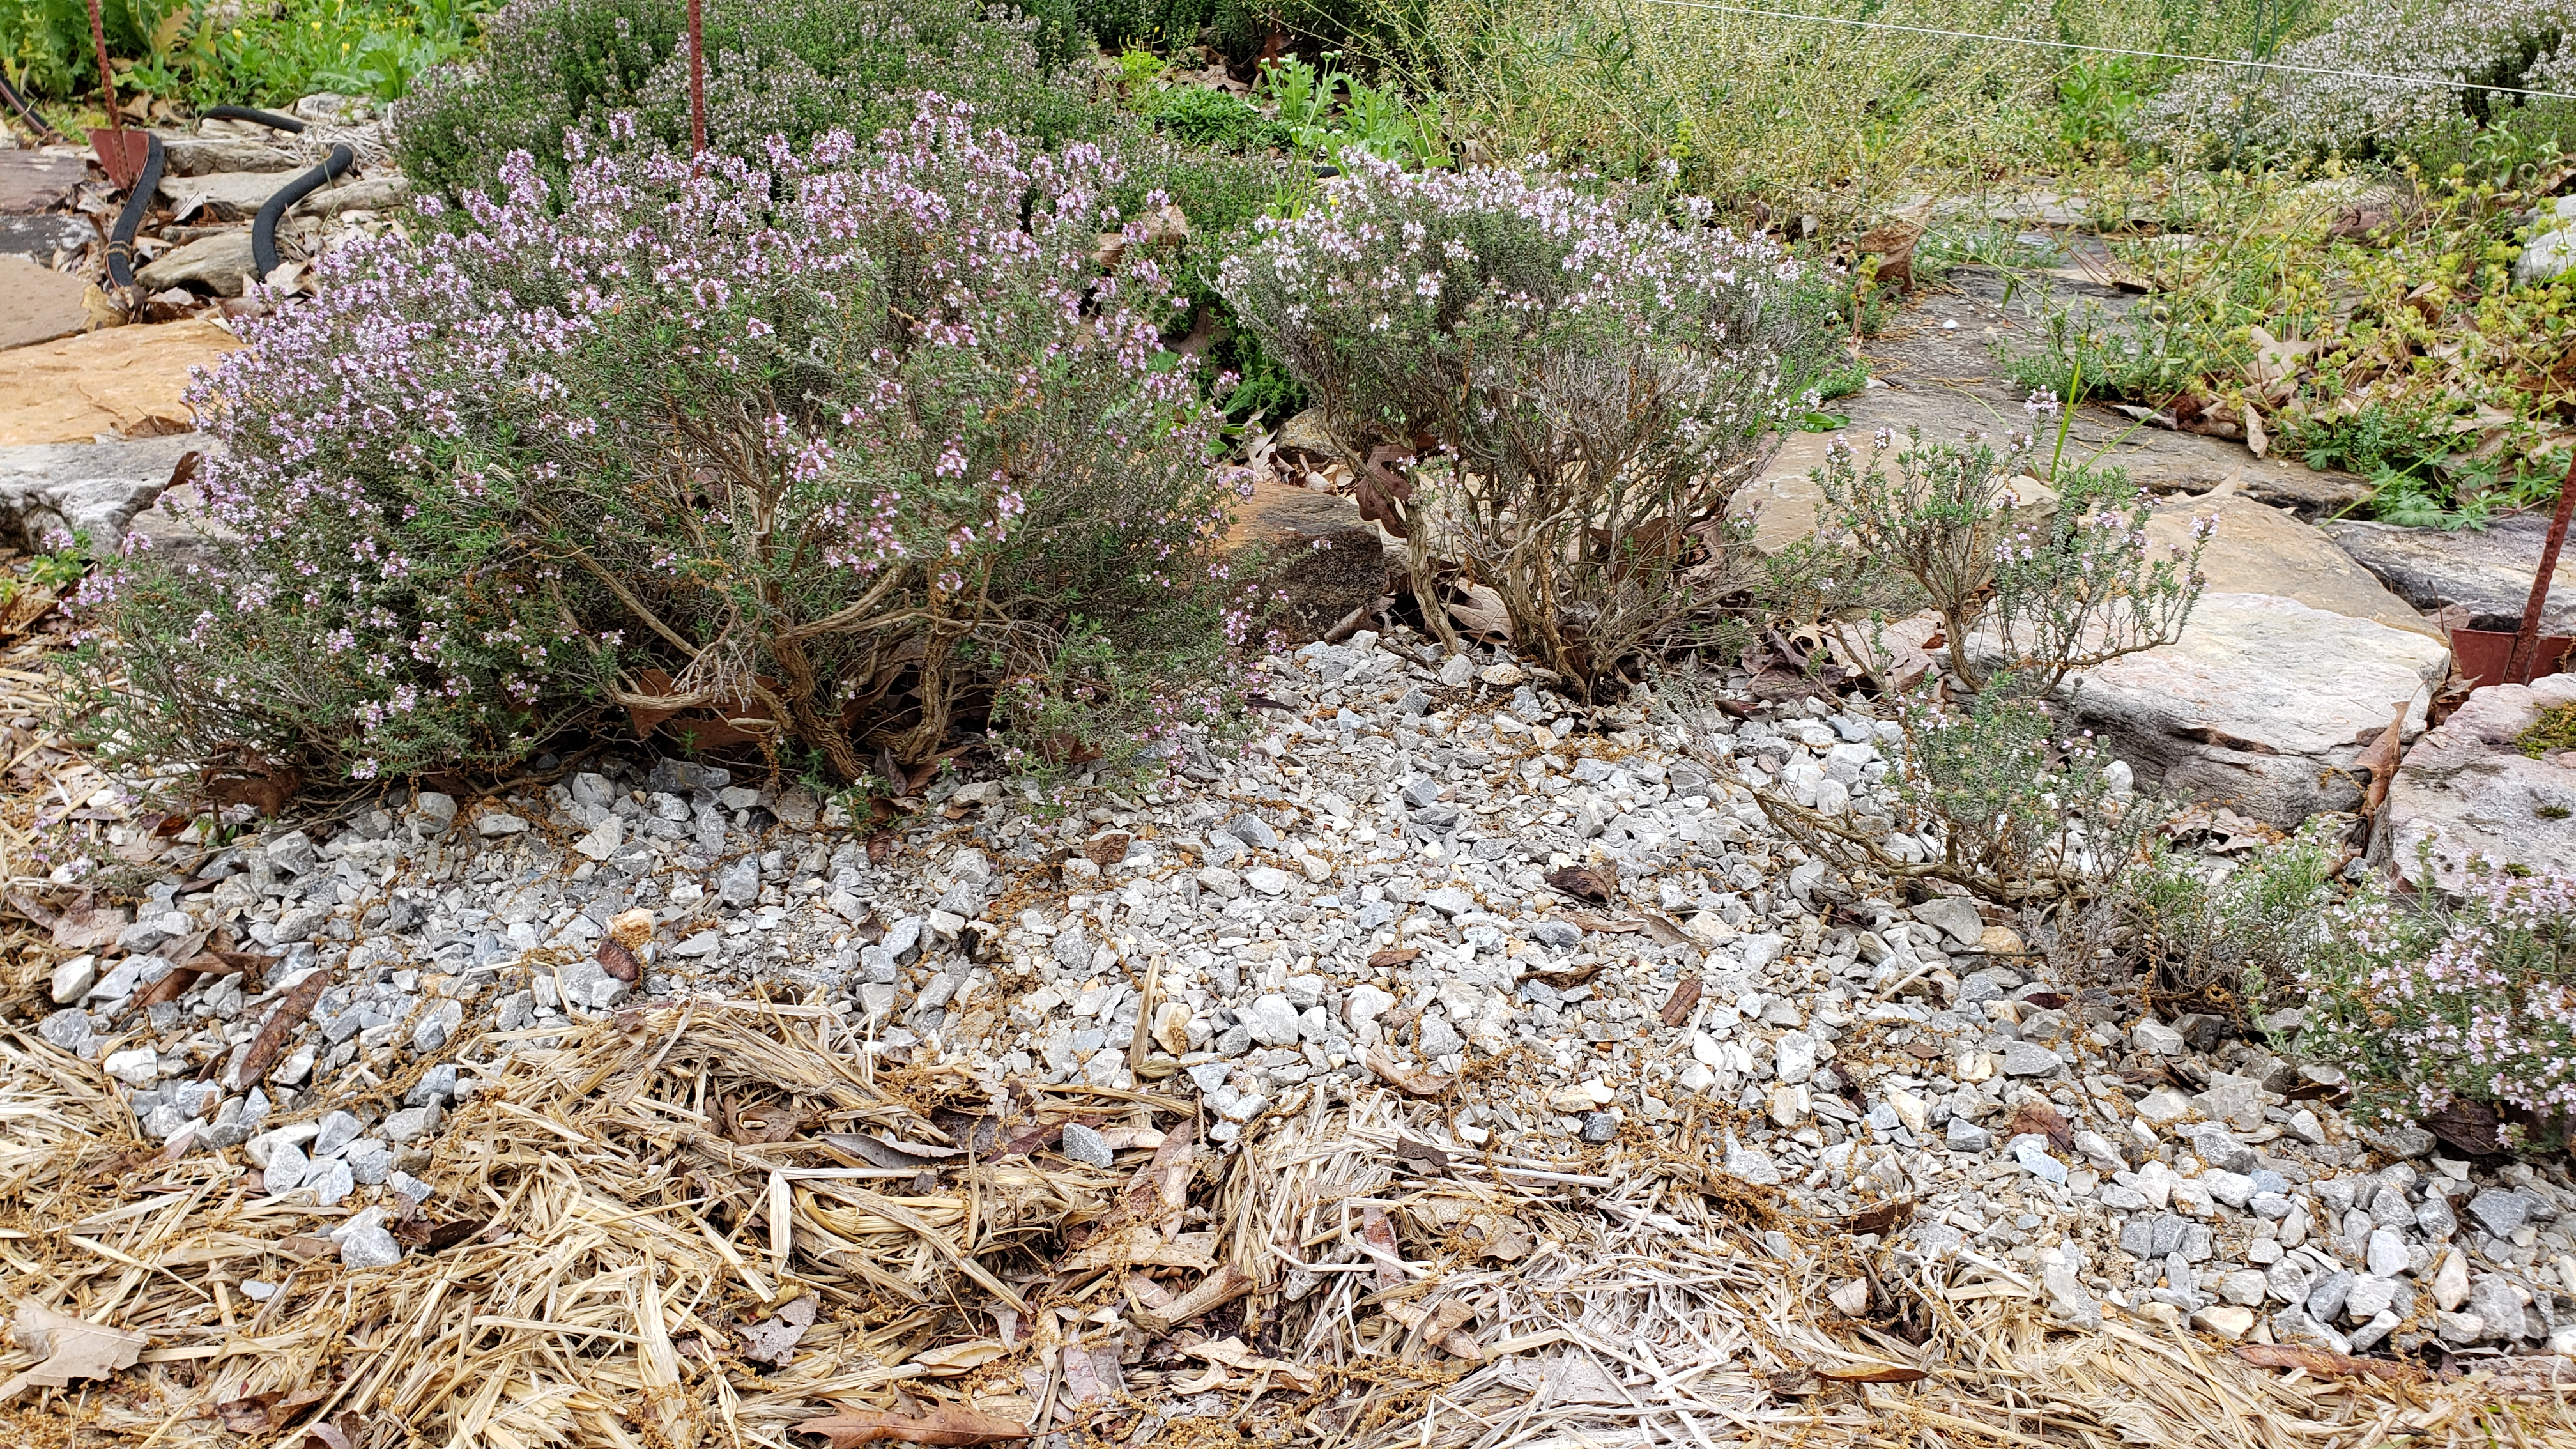 Rosemary plants in the park's Kitchen Garden thrive in a mulch of gravel. Wood mulch in the foreground is used to suppress weeds.